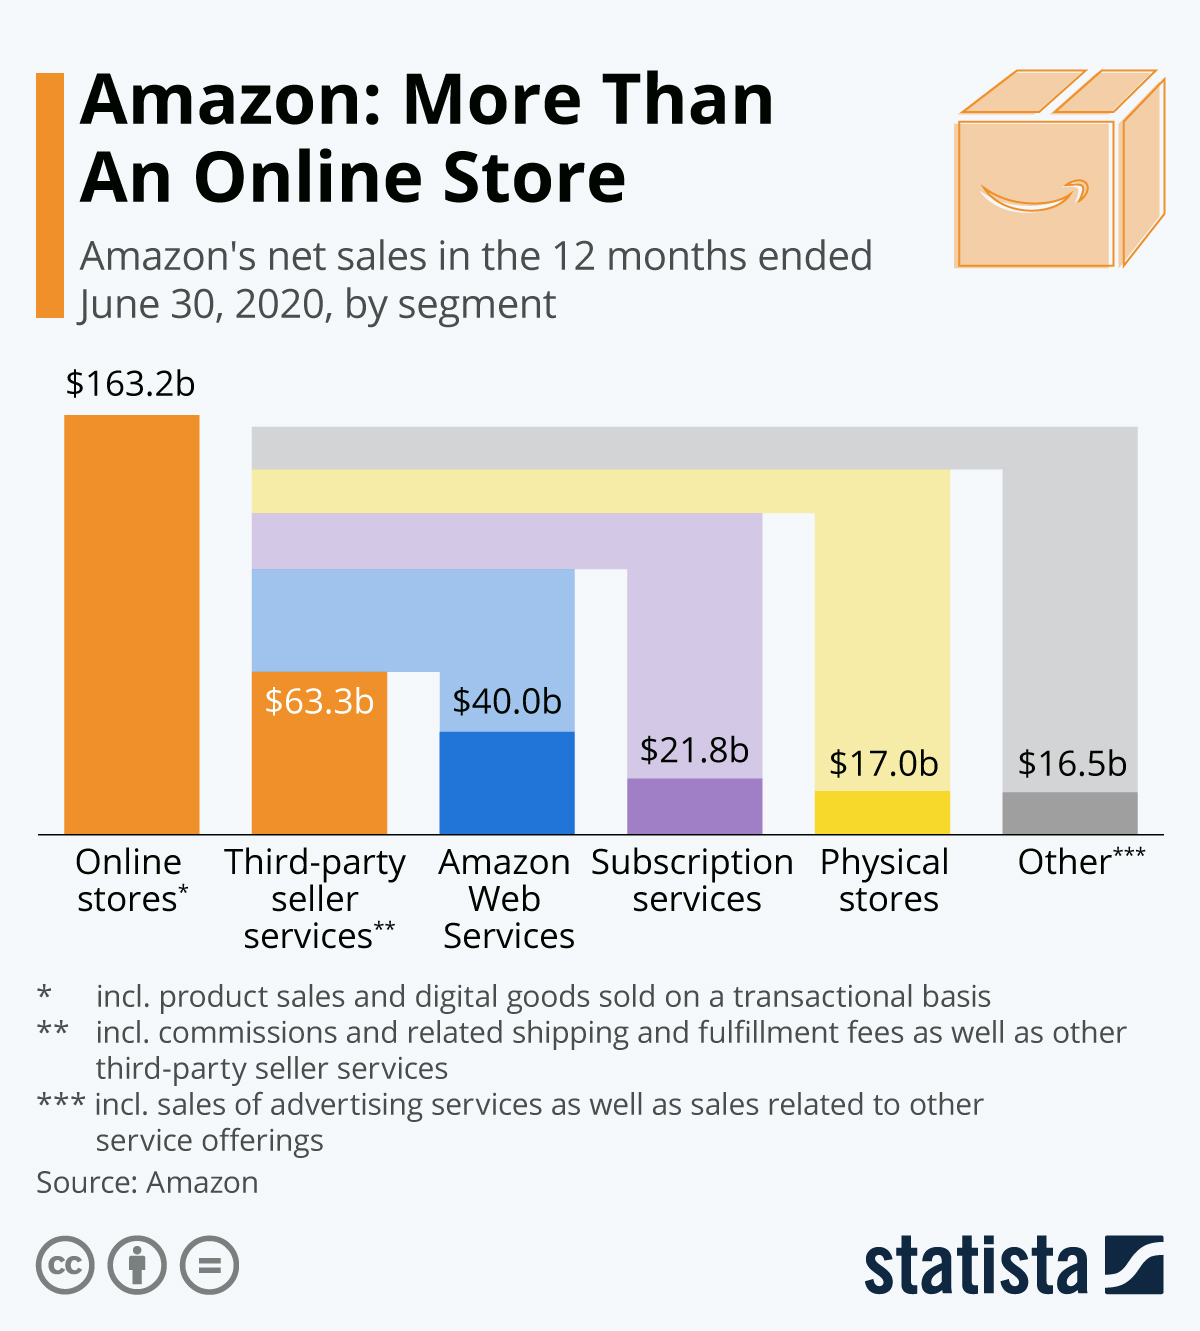 Amazon: More Than An Online Store #infographic